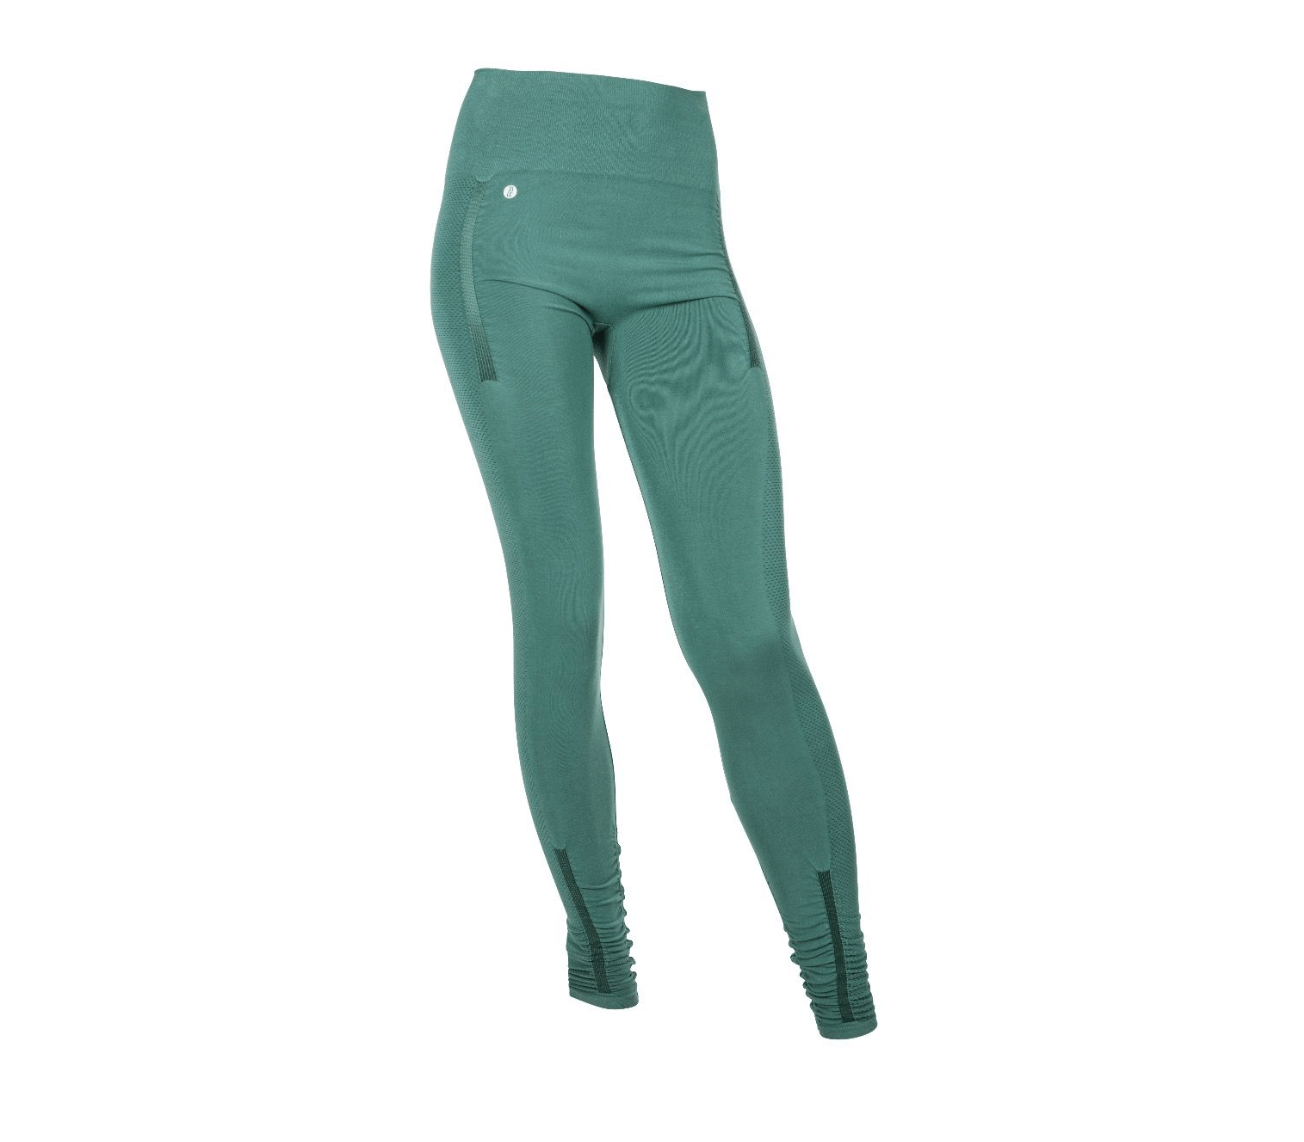 Billede af Run and Relax Yoga Tights - Muted Green